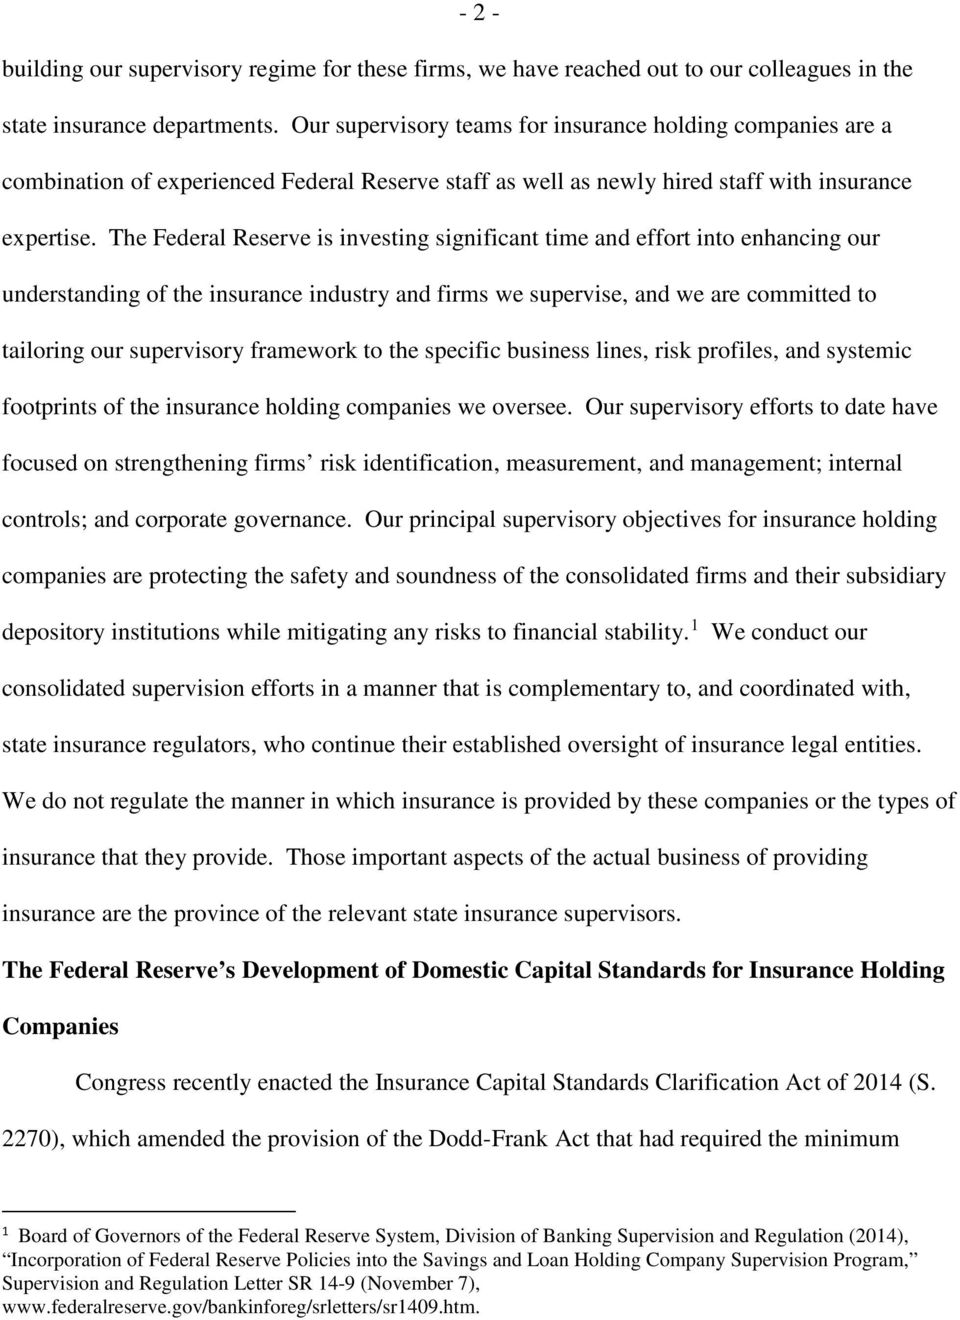 The Federal Reserve is investing significant time and effort into enhancing our understanding of the insurance industry and firms we supervise, and we are committed to tailoring our supervisory